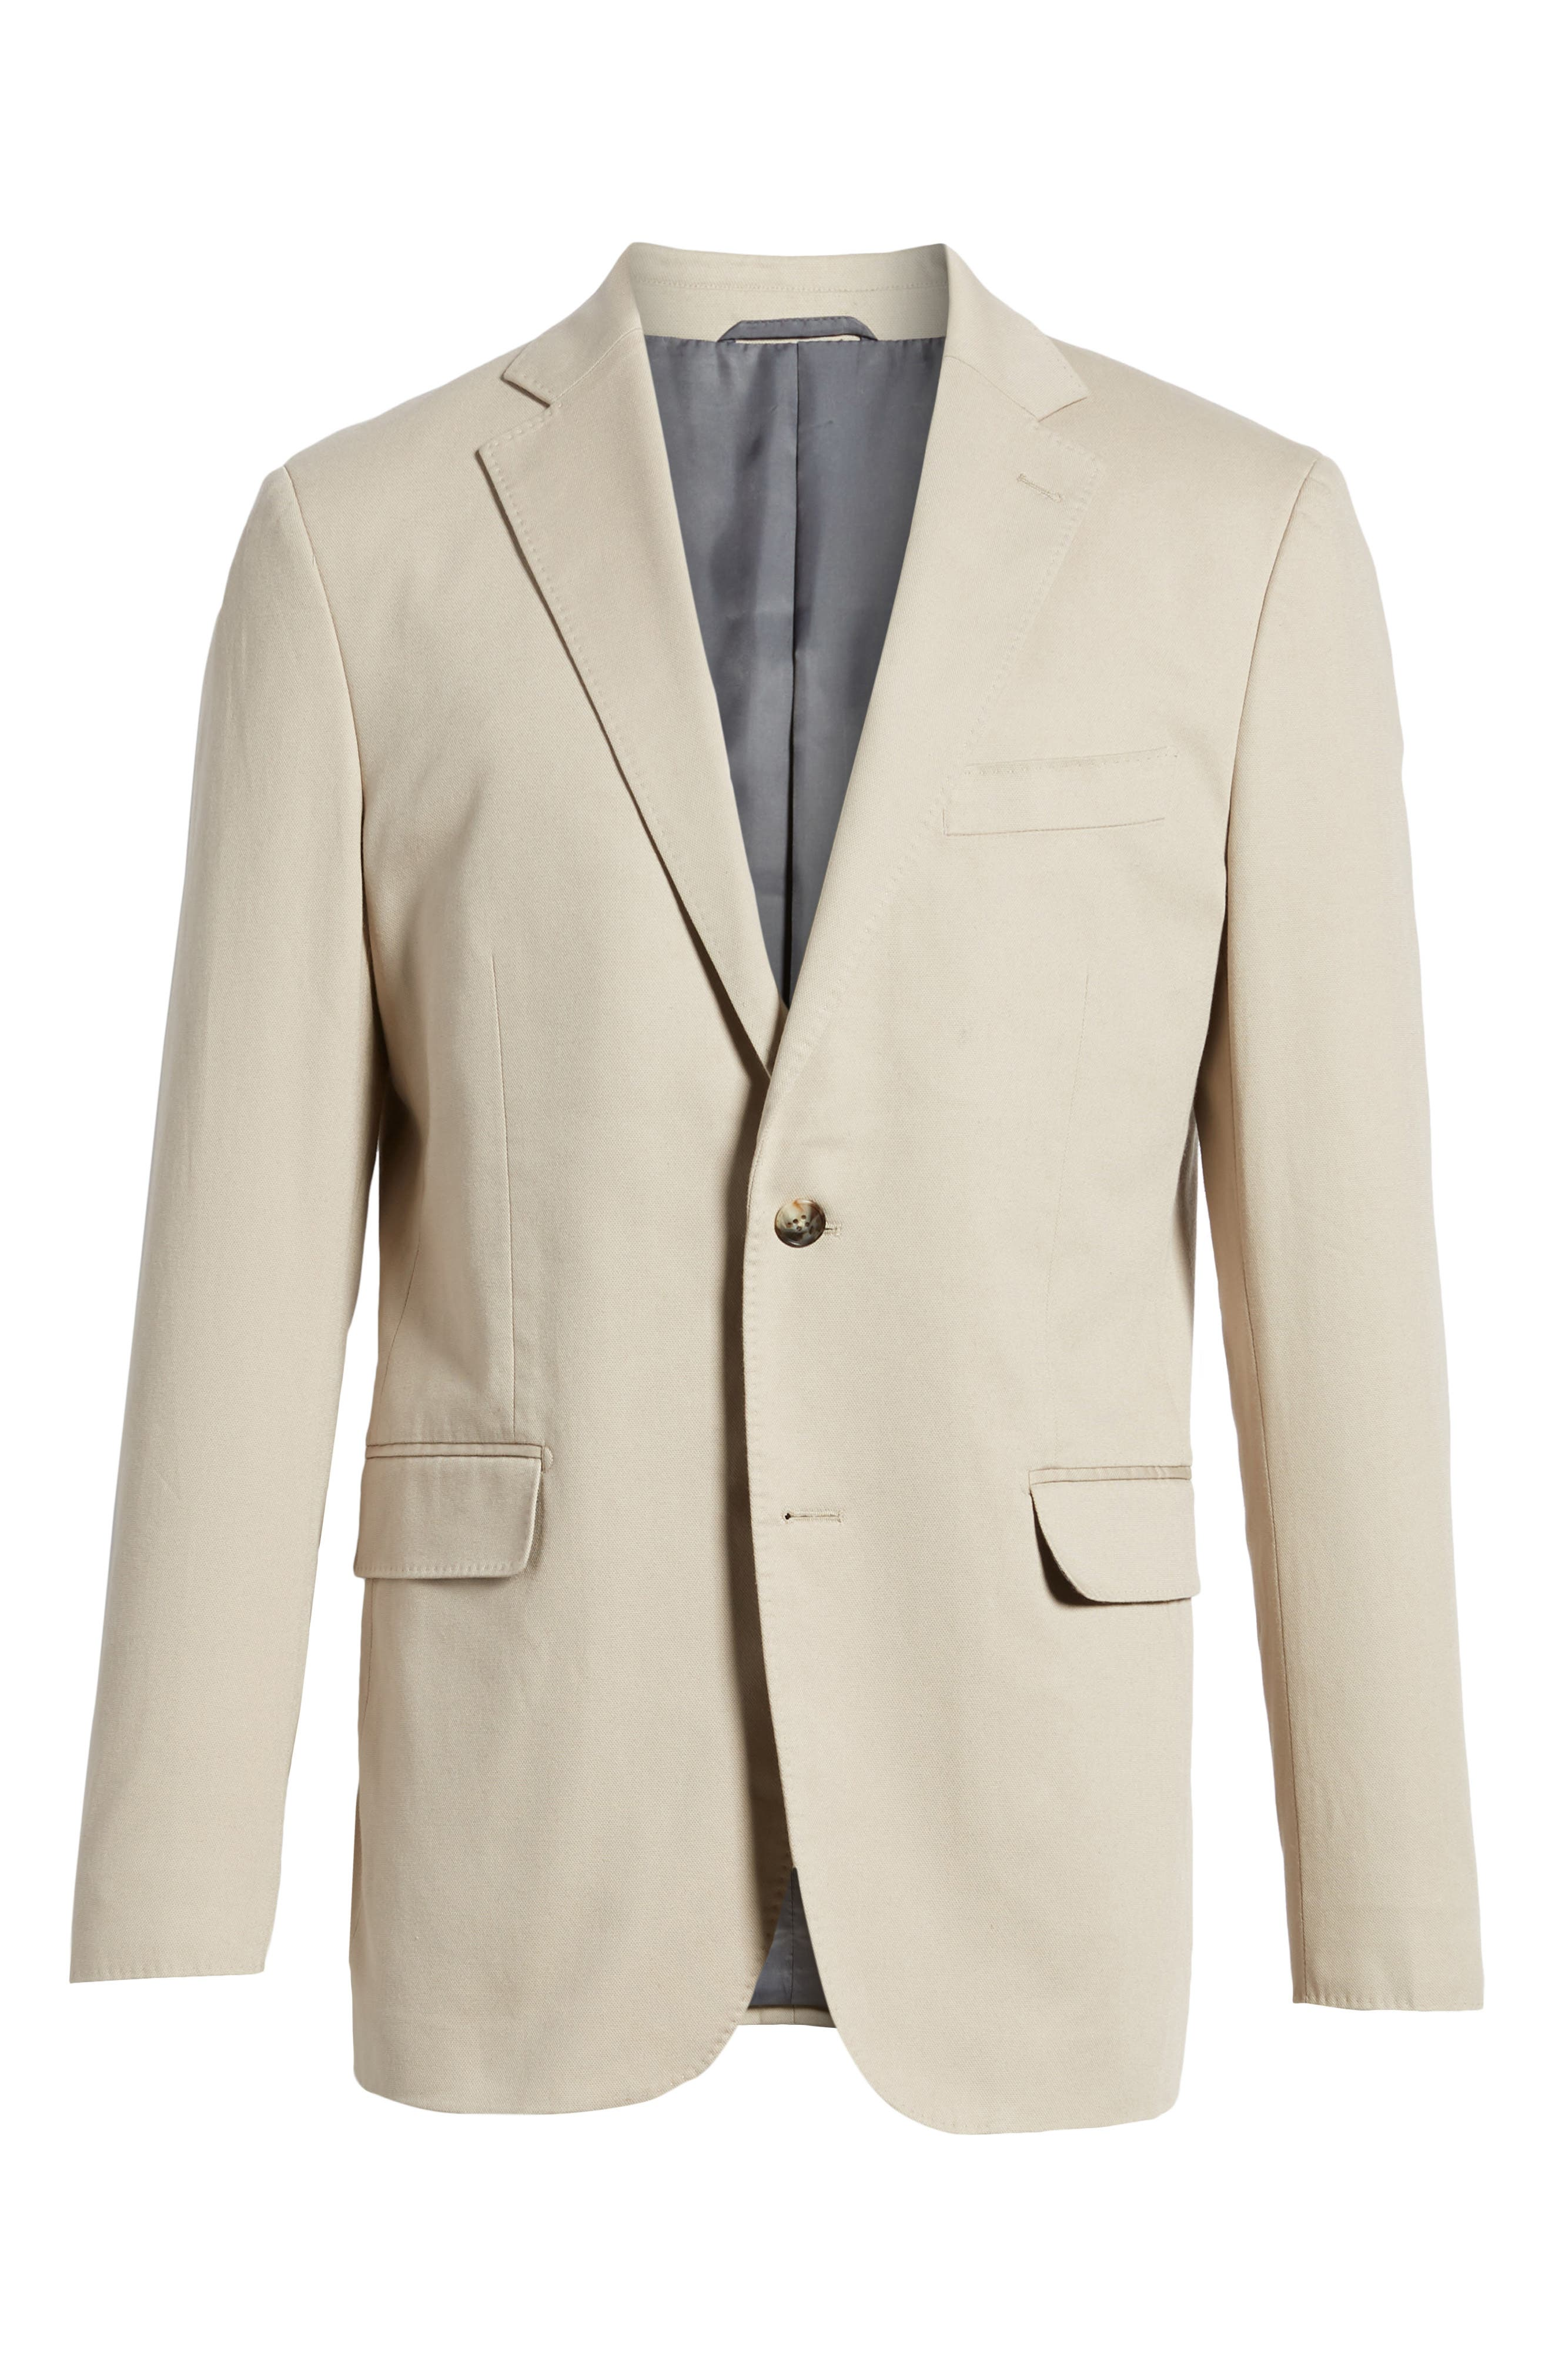 Finchley Regular Fit Sportcoat,                             Alternate thumbnail 5, color,                             102